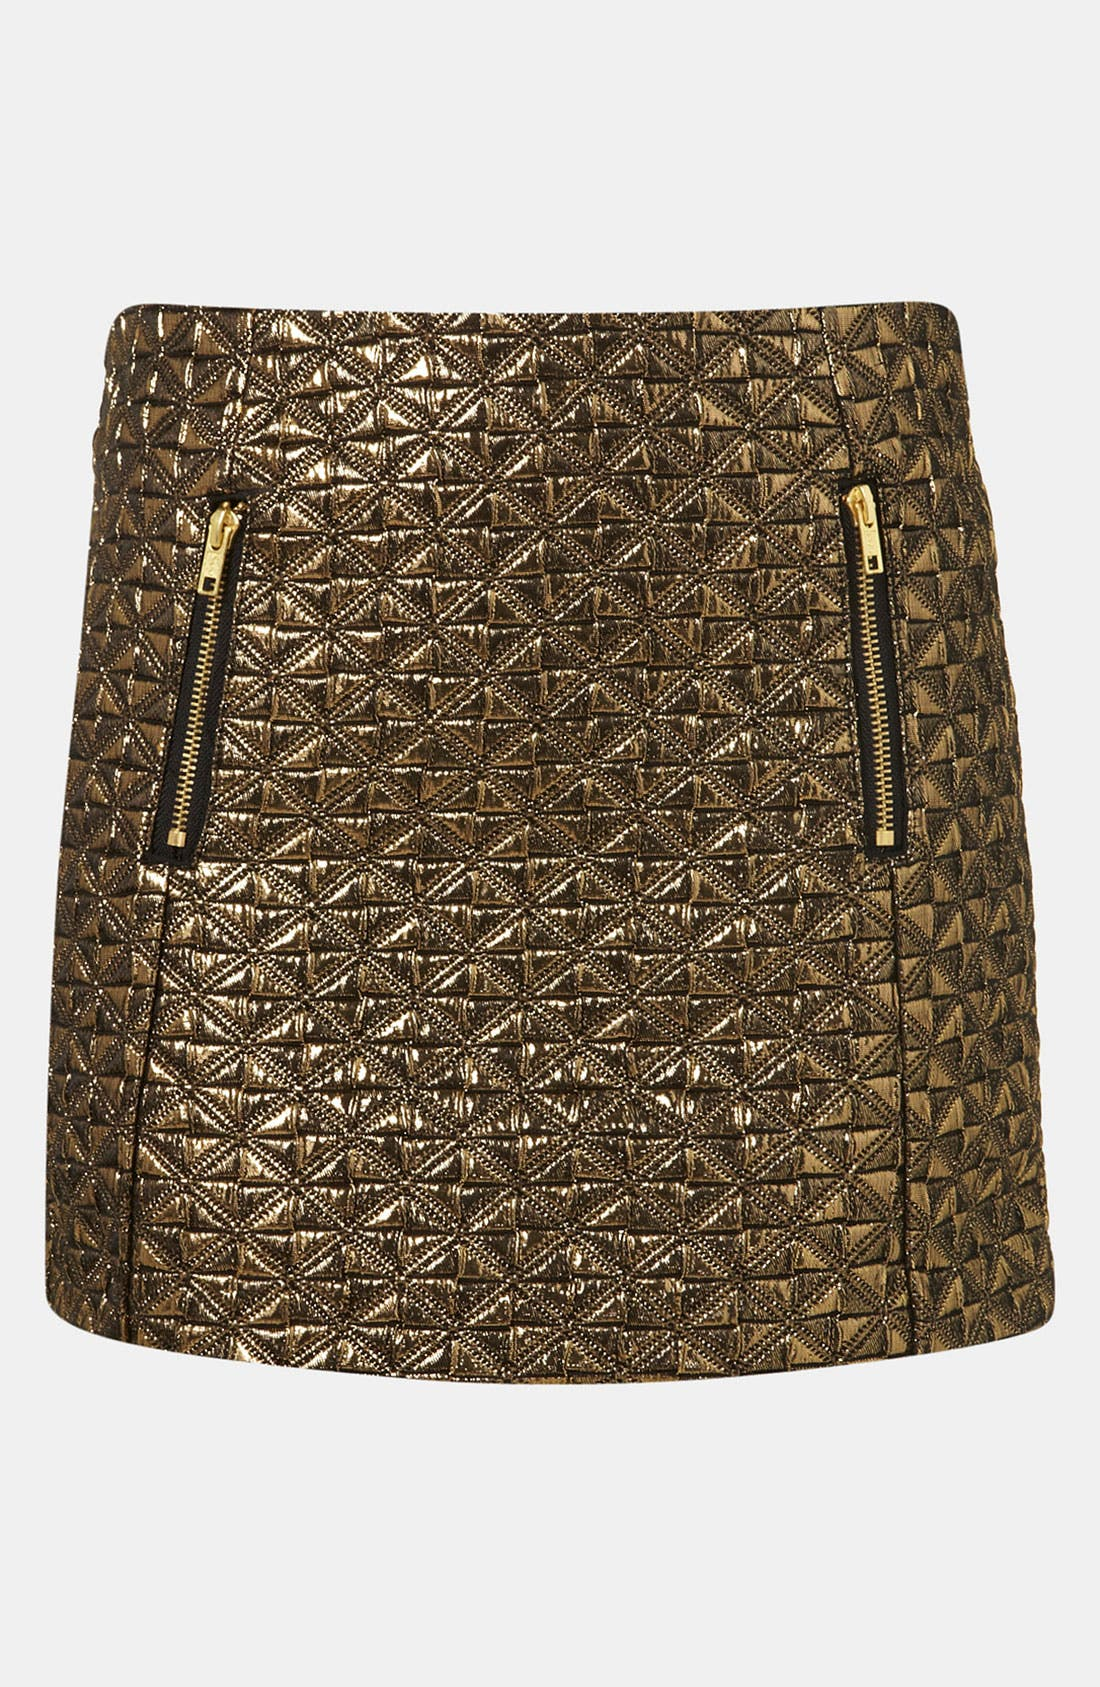 Metallic Jacquard Miniskirt,                             Main thumbnail 1, color,                             710